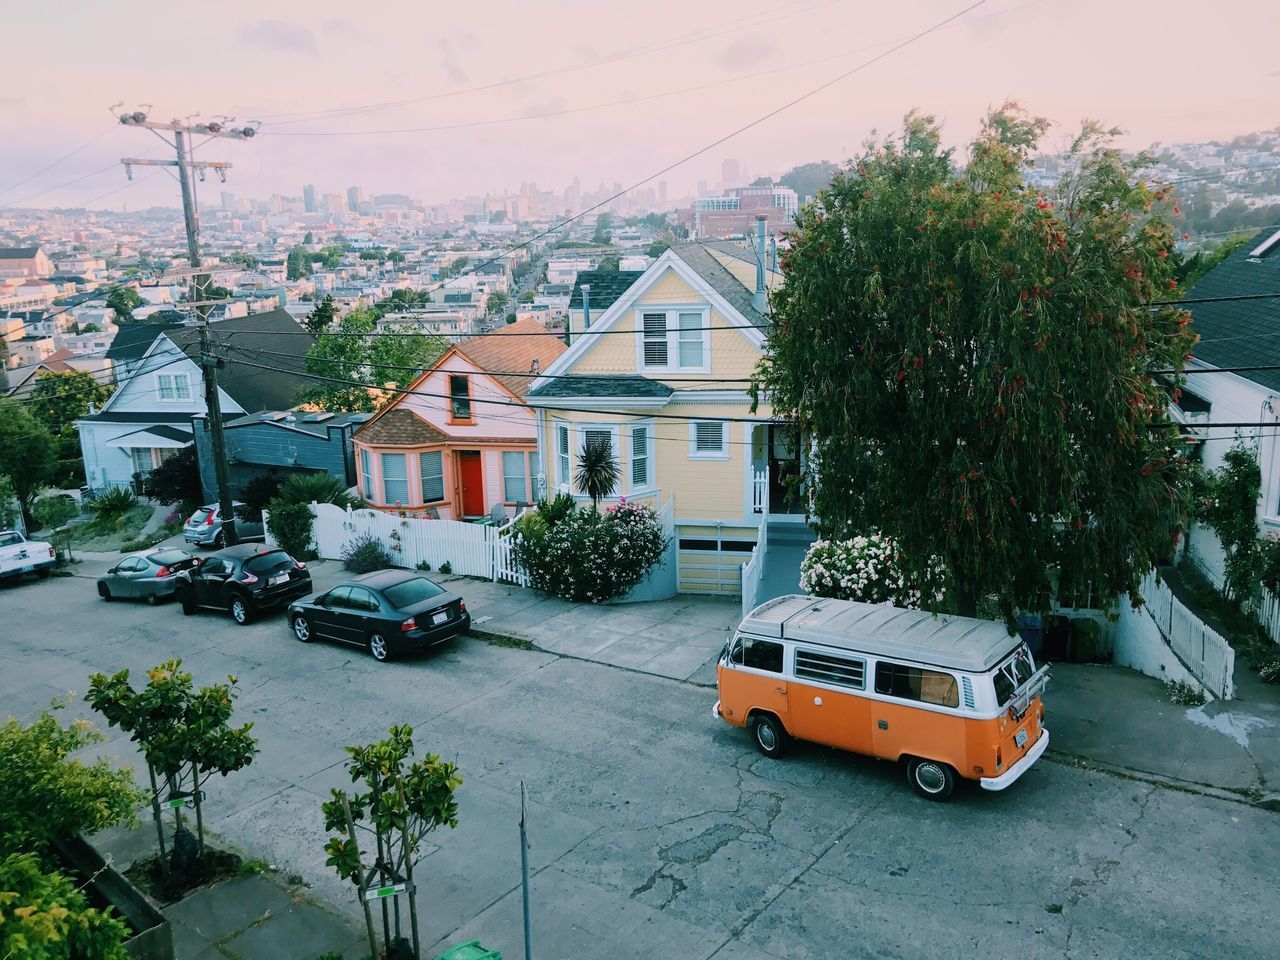 VW Bus = Instant happiness // Car Building Exterior Architecture Transportation Tree Built Structure Land Vehicle House Mode Of Transport Cable Day Sky Residential Building Outdoors No People City